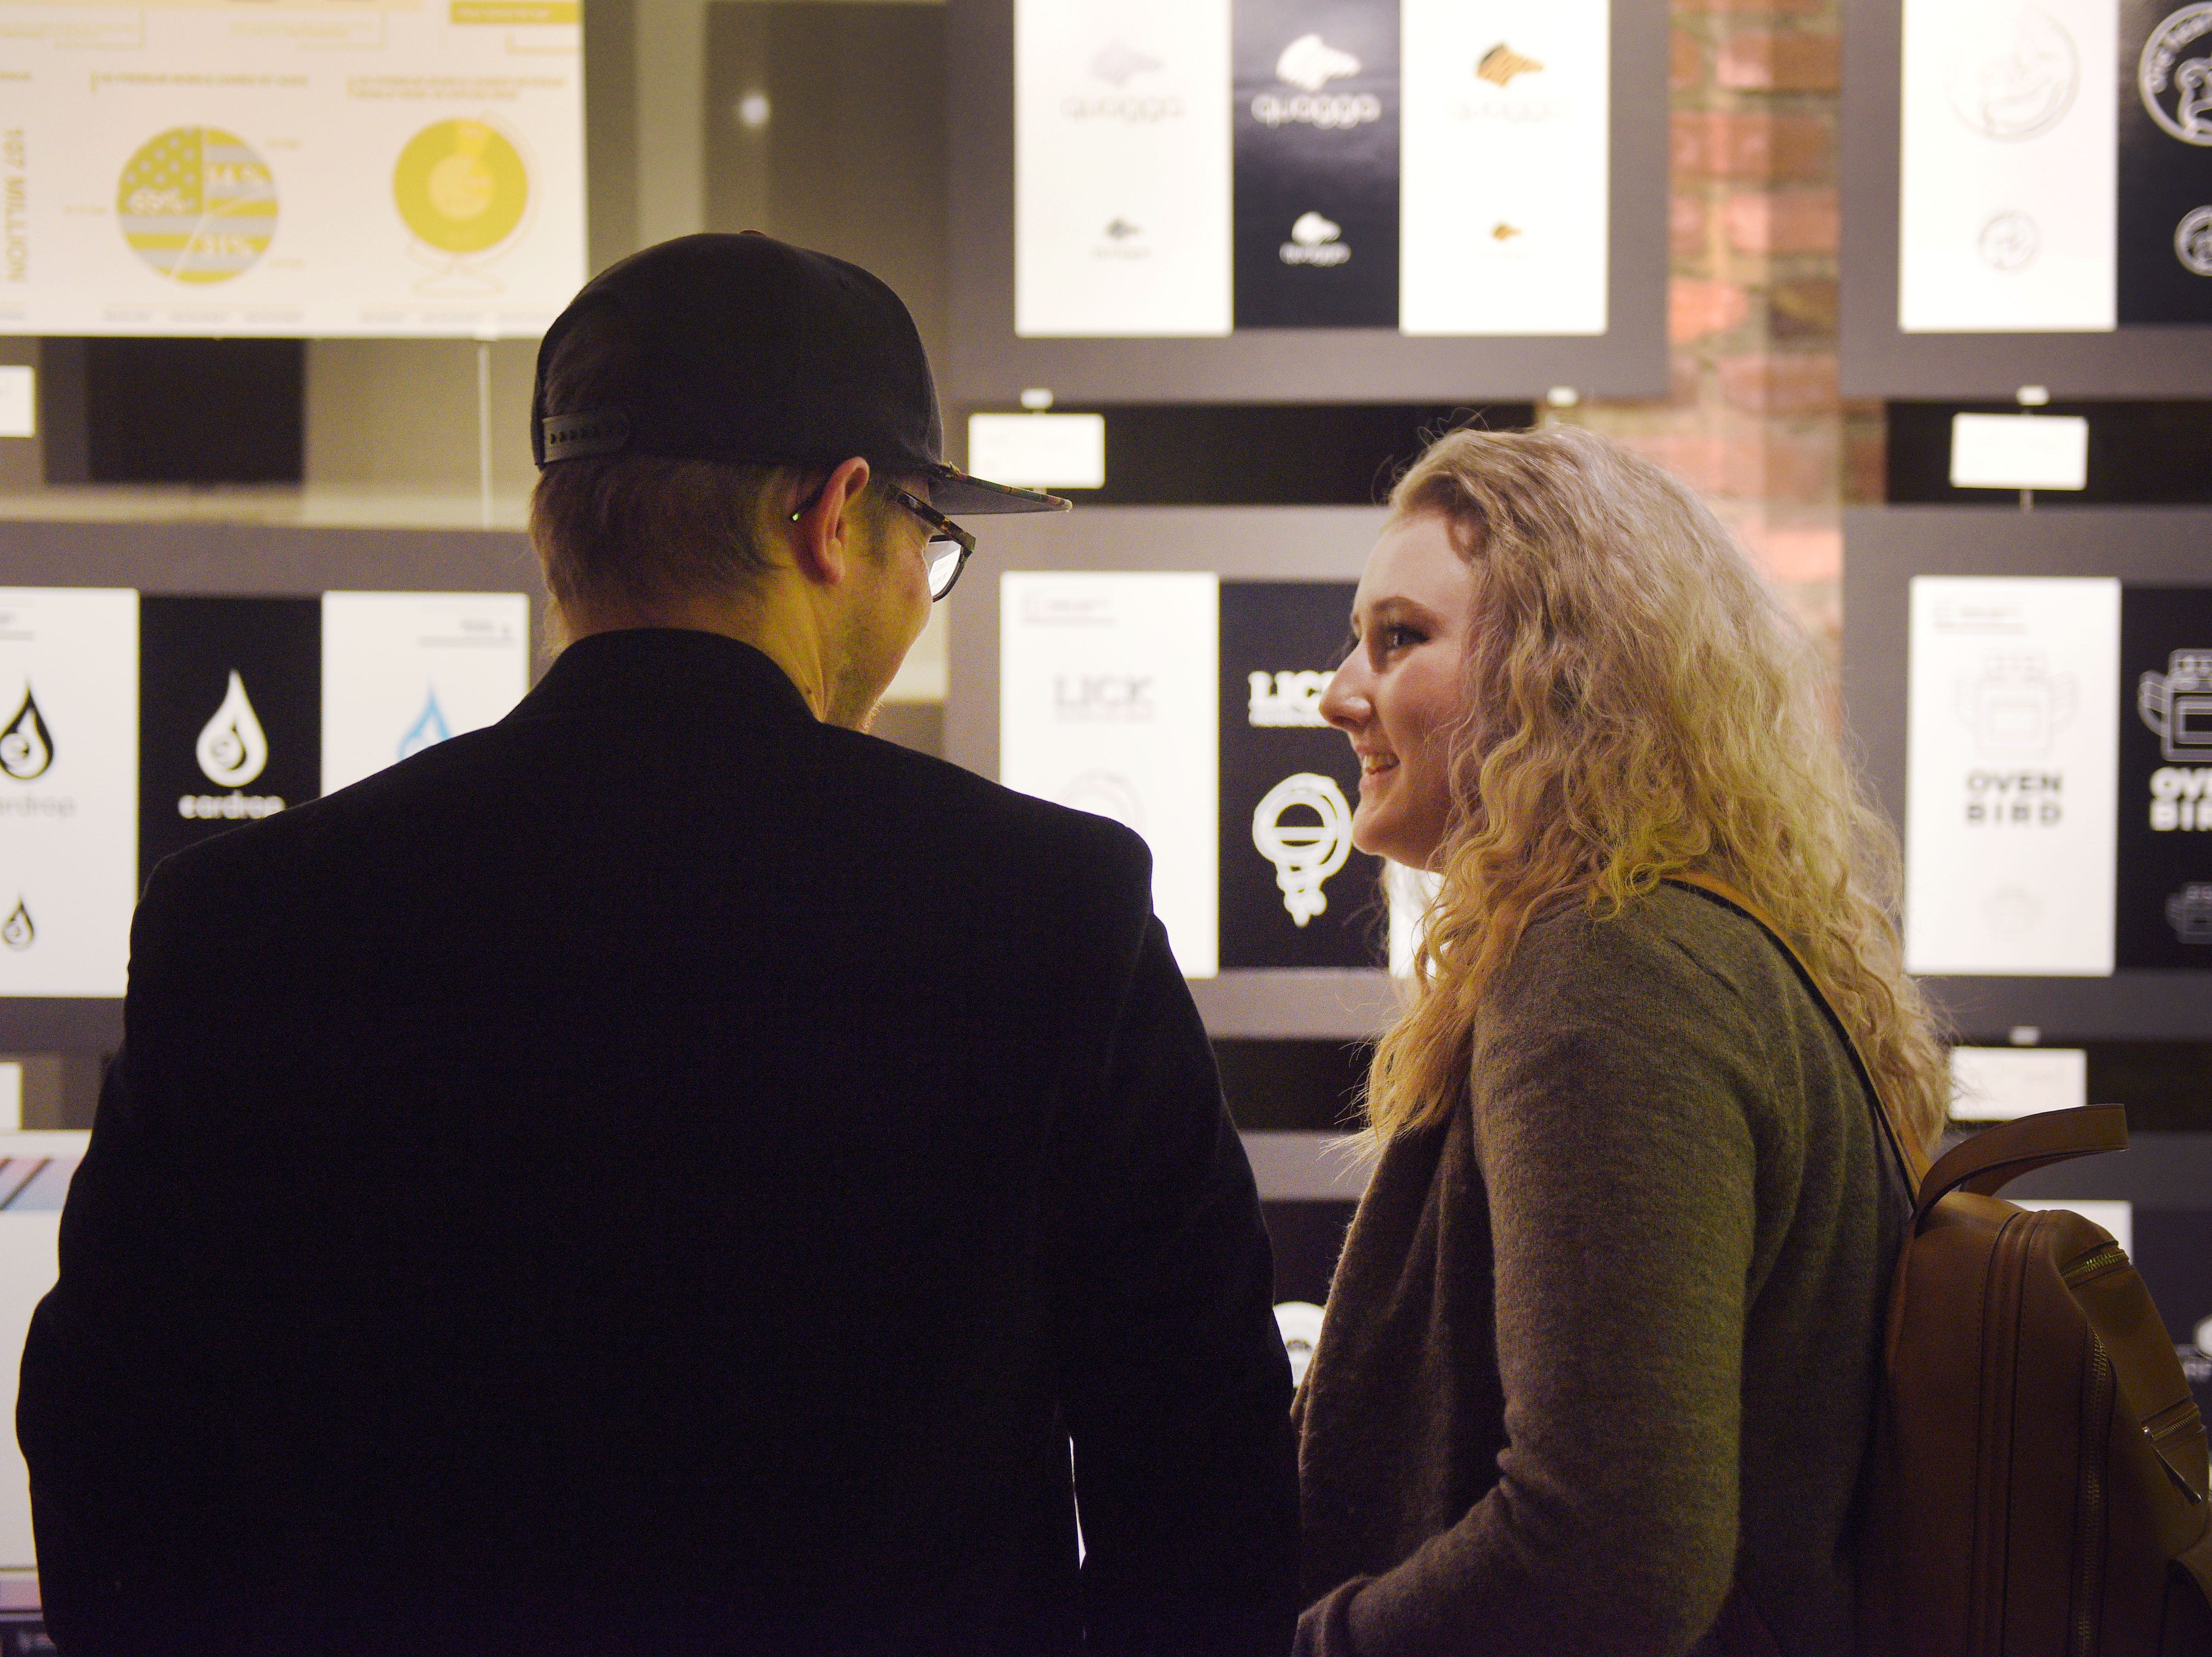 Tyson Schultz and Brianna Olson attend the USD Graphic Design Student work show Wednesday, Nov. 7, at the Sioux Falls Design Center in downtown Sioux Falls.